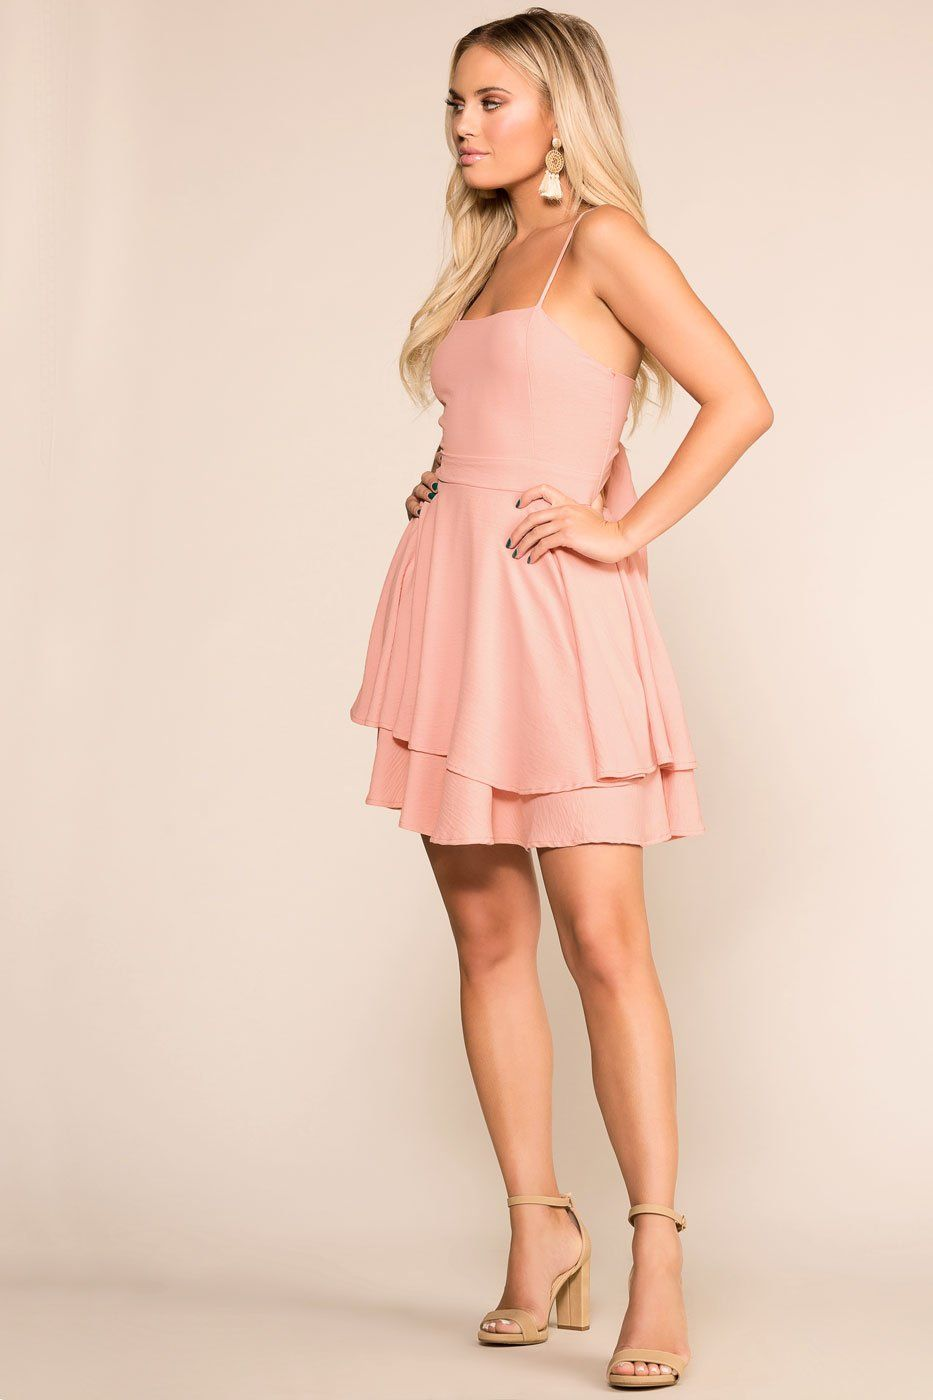 Priceless | Blush | Layered | Skater Dress | Womens